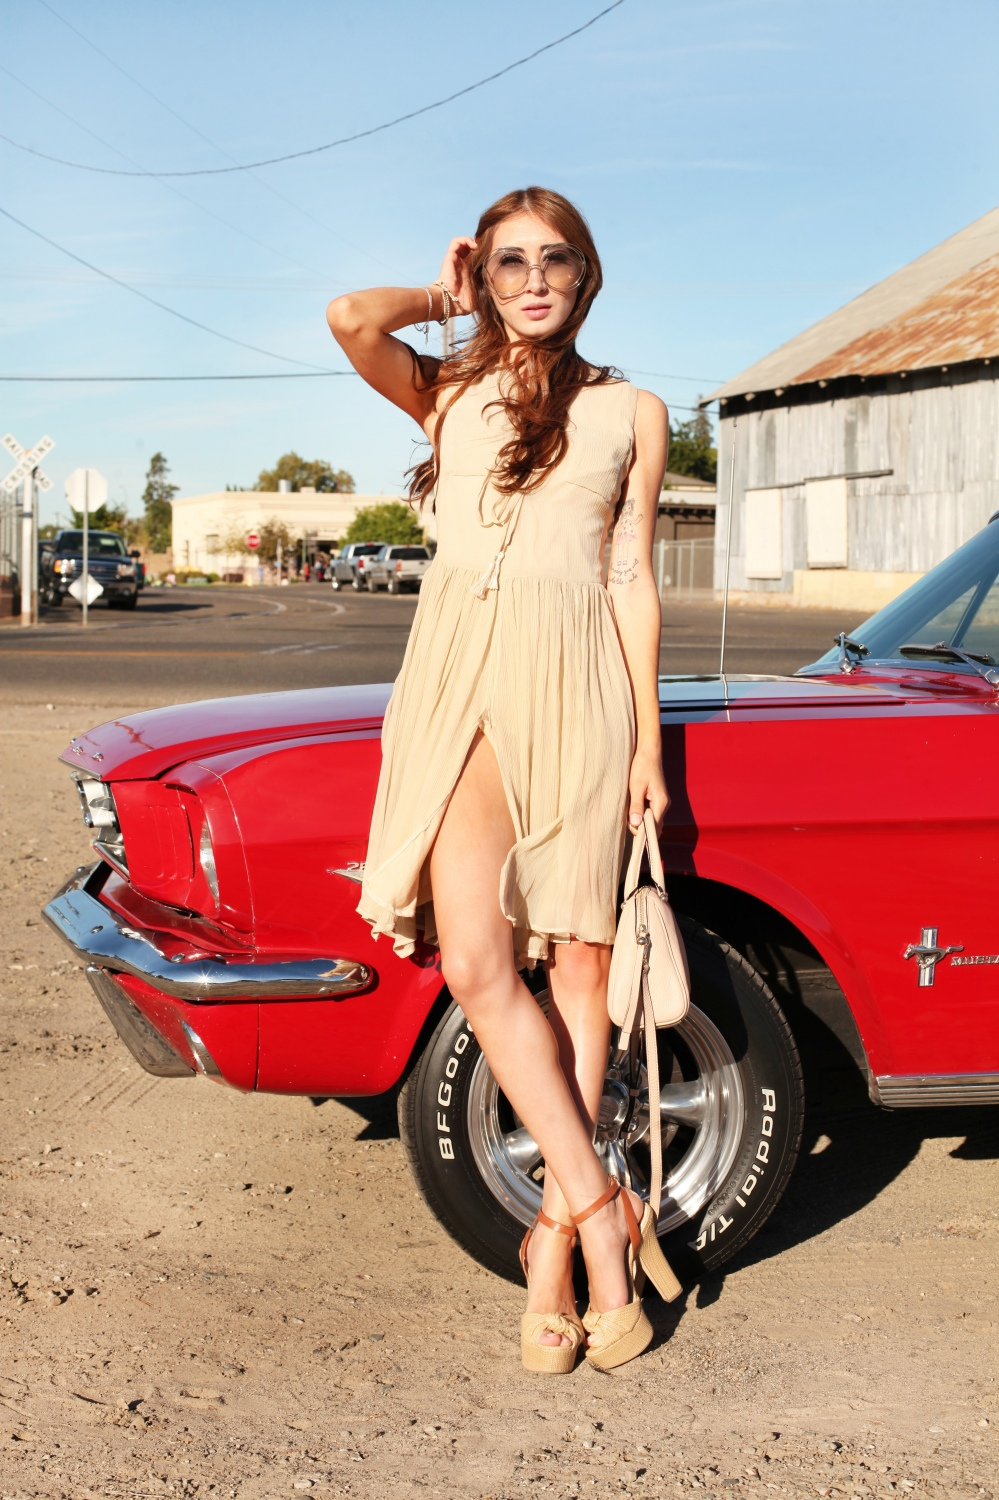 Shift Into Neutral Alyssa Nicole Silk Bowtie Dress 3